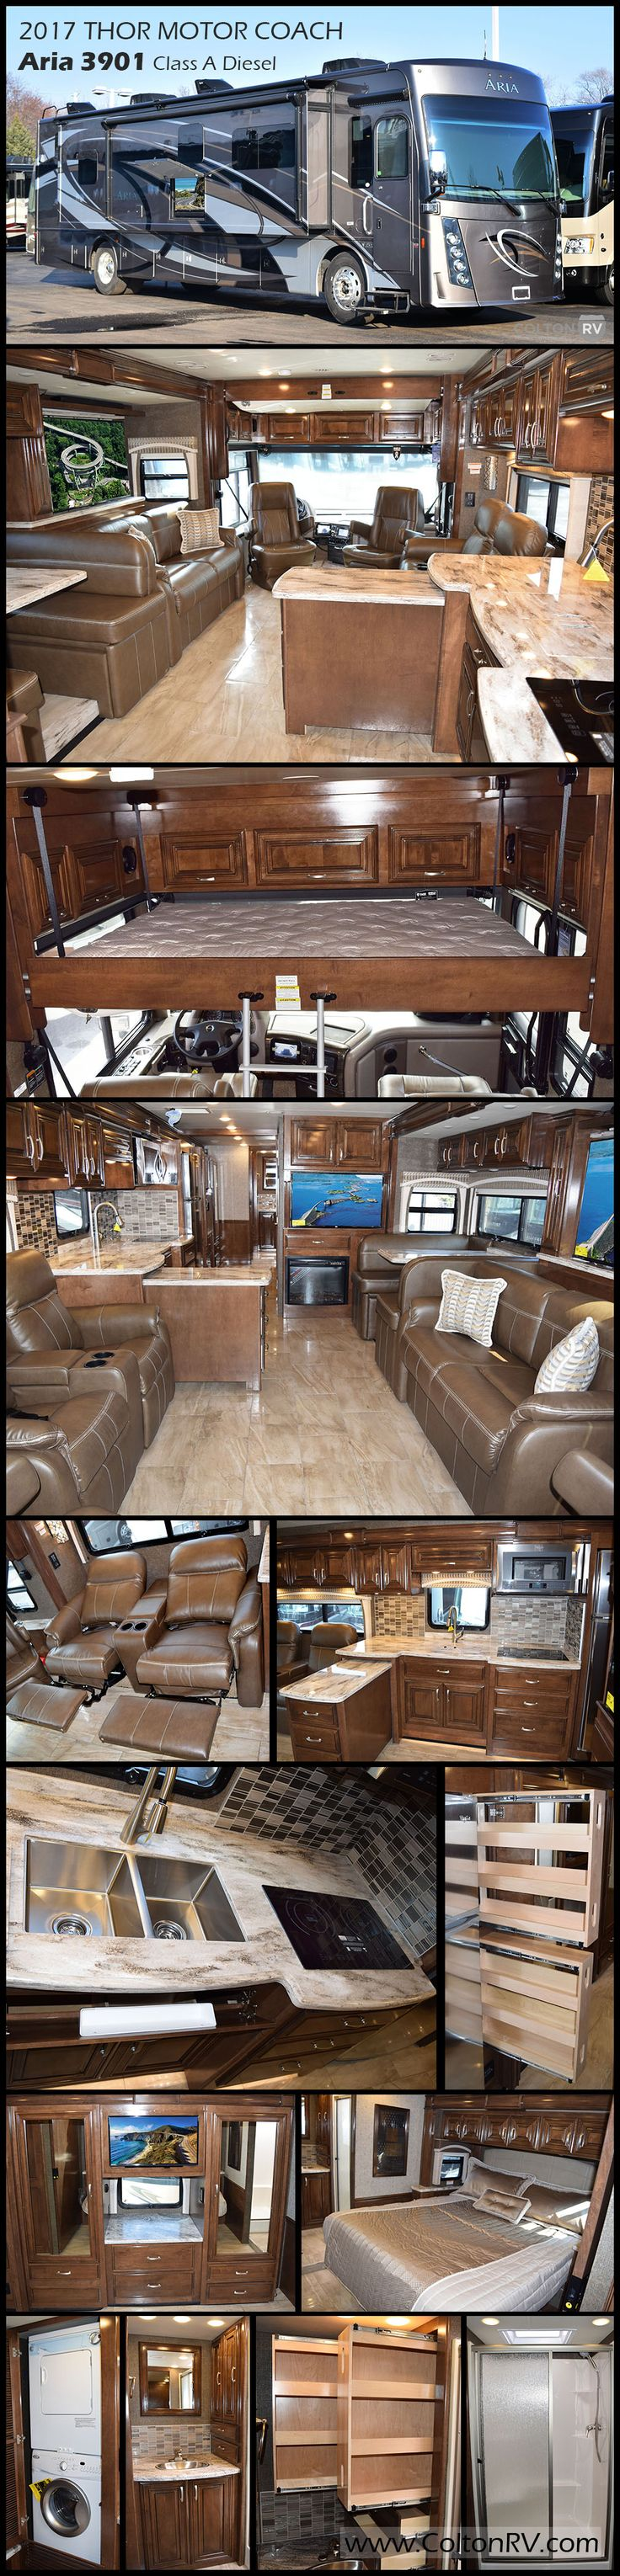 "The Aria is the newest member of Thor Motor Coach's luxury line of Class A diesel motorhomes. A few of the features in this 2017 ARIA 3901 Class A Diesel coach are: stackable washer and dryer, retractable 55"" LED HDTV in living area and a 43"" LED HDTV over the fireplace. Relax at the end of a fun-filled day in the master bedroom with its king size bed with Tilt-A-View inclining bed mechanism and private en suite bathroom"